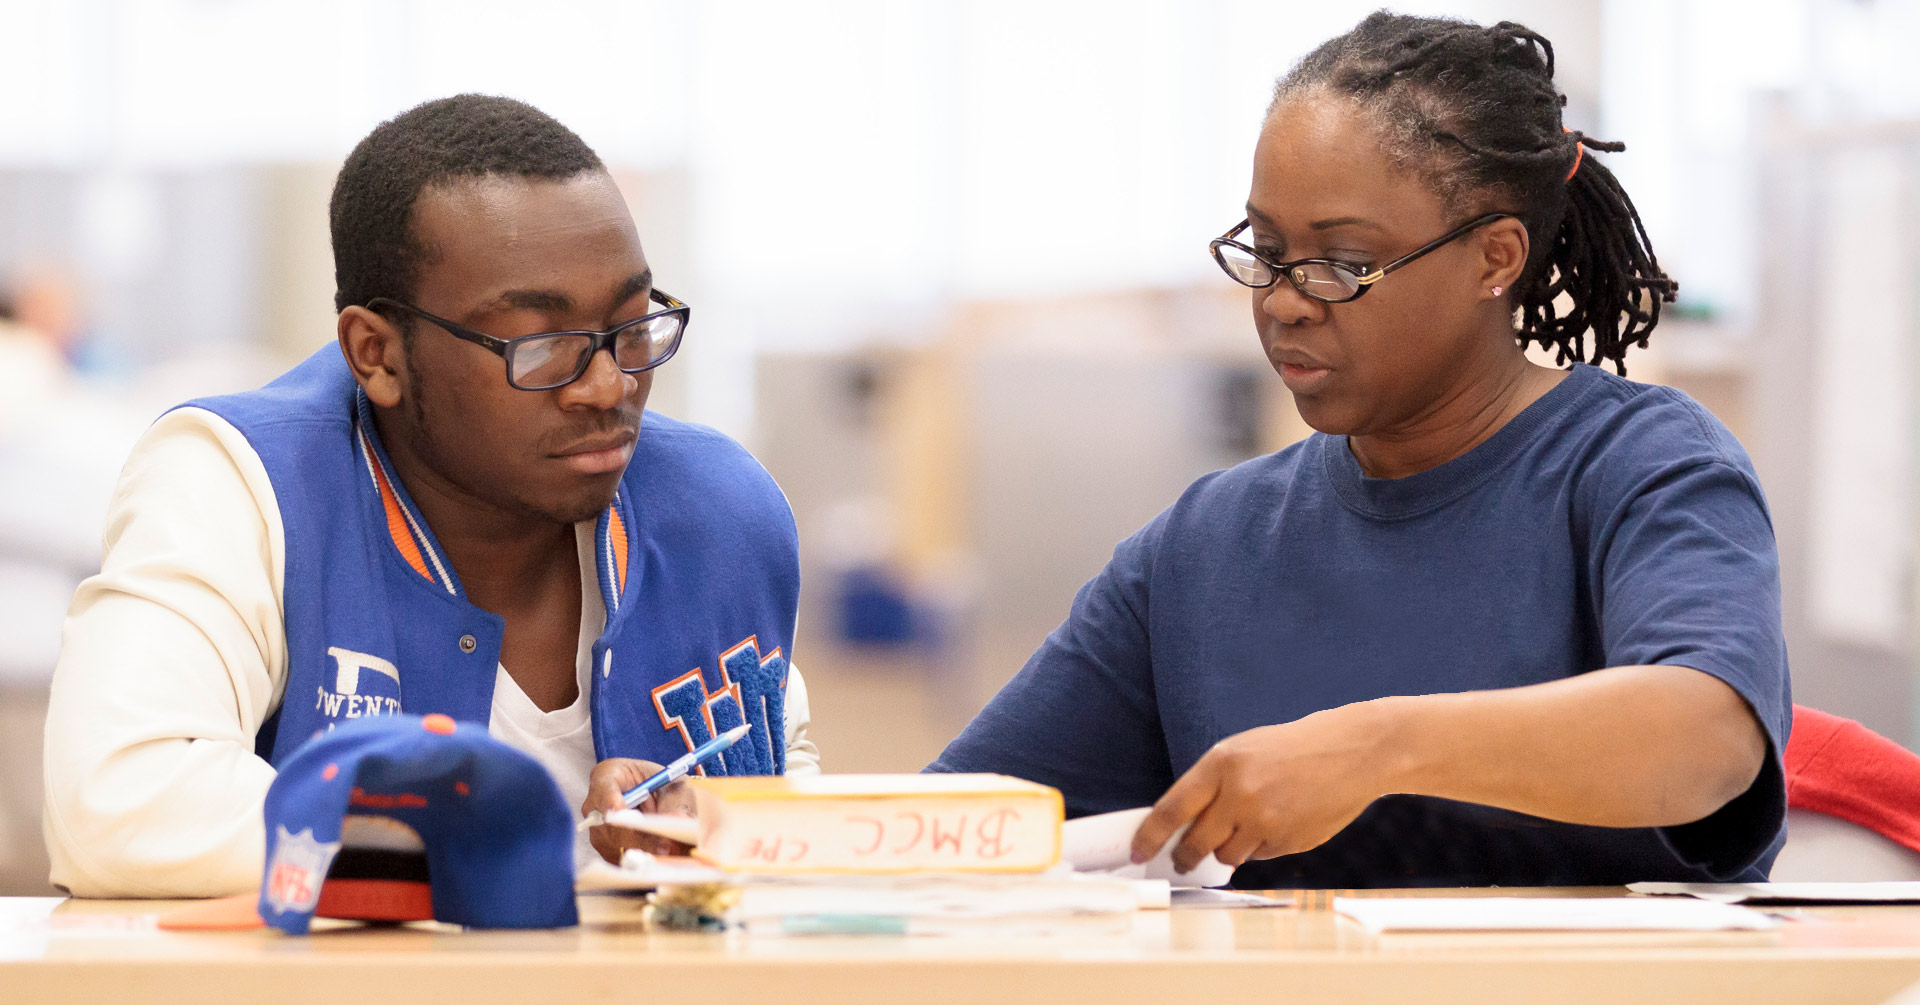 CUNY Tutor Corps Hires 300 STEM Students